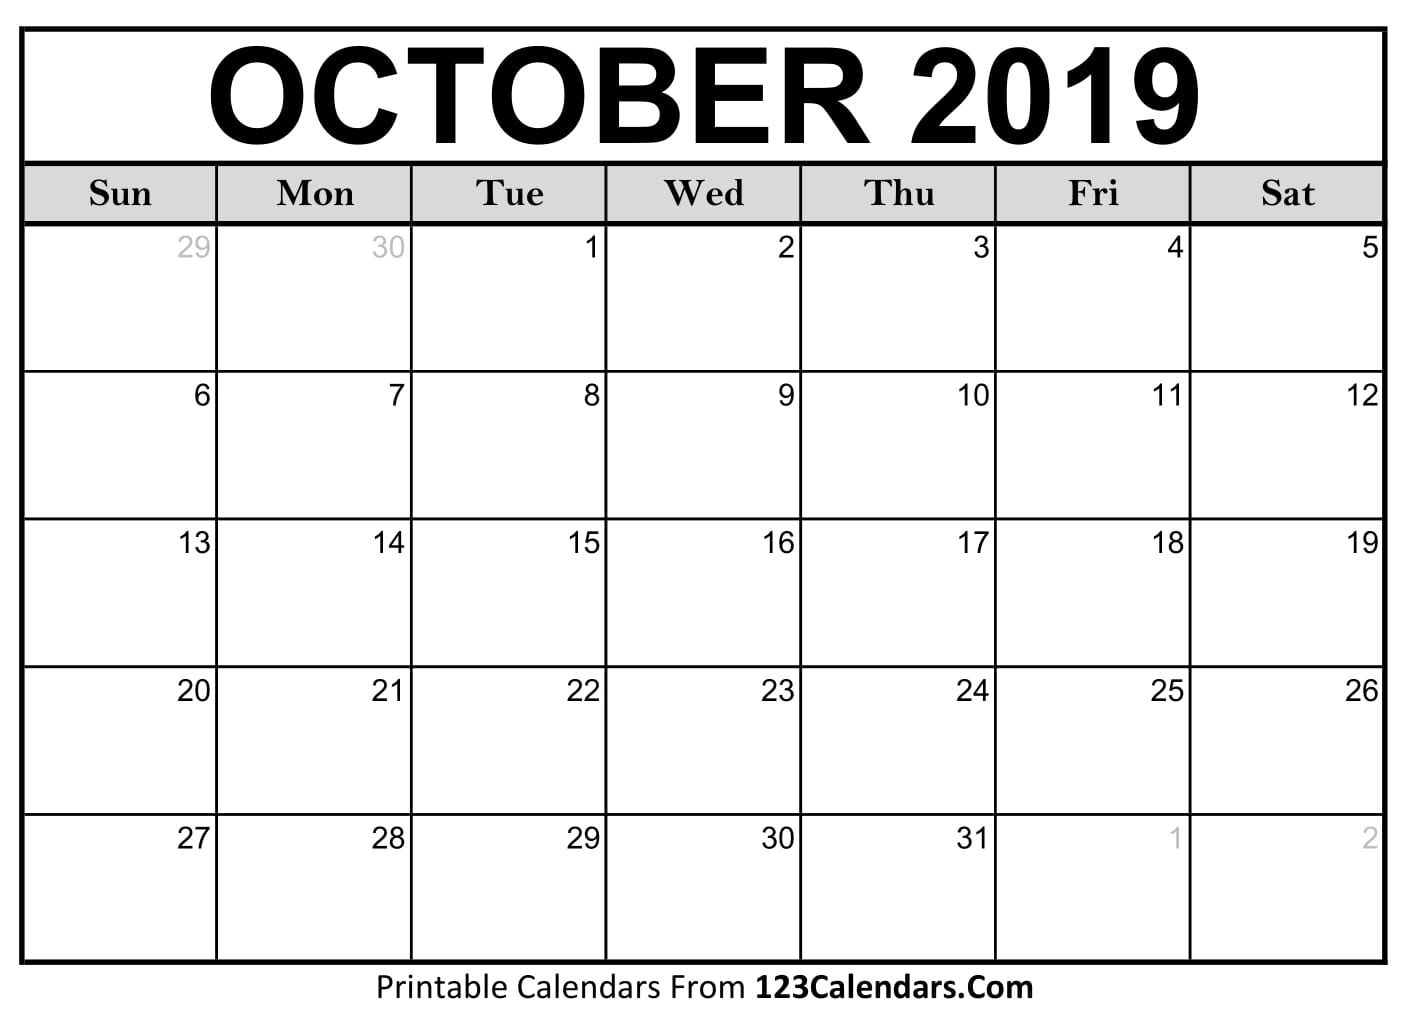 image relating to Printable Calendar for October identified as Oct 2019 Printable Calendar